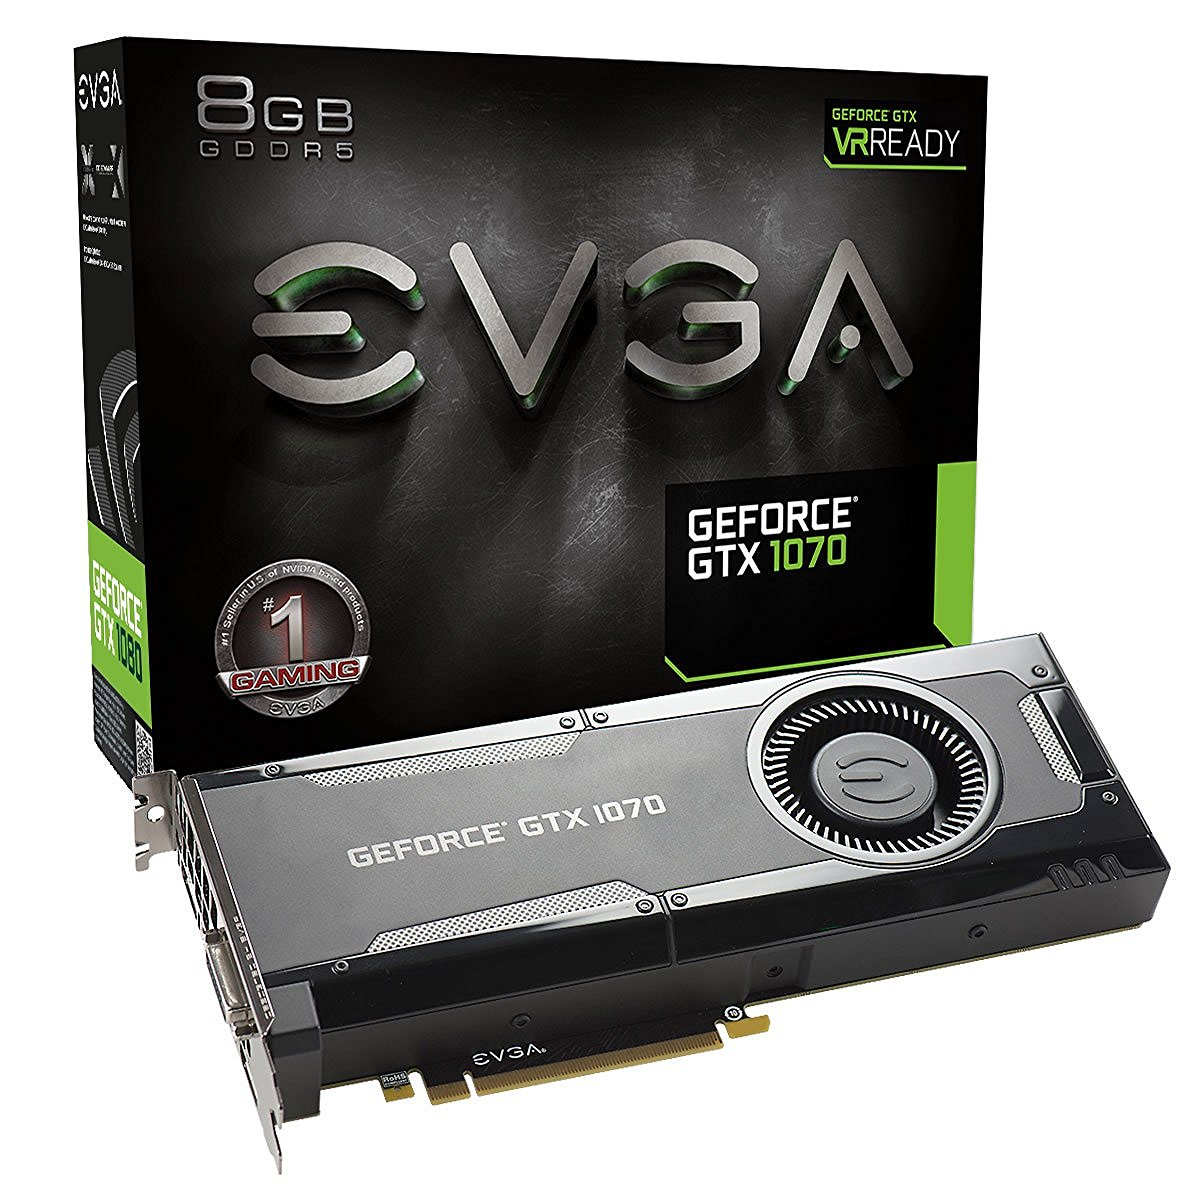 EVGA GeForce GTX 1070 GAMING 8GB VR Ready Graphics Card | 08G-P4-5170-KR